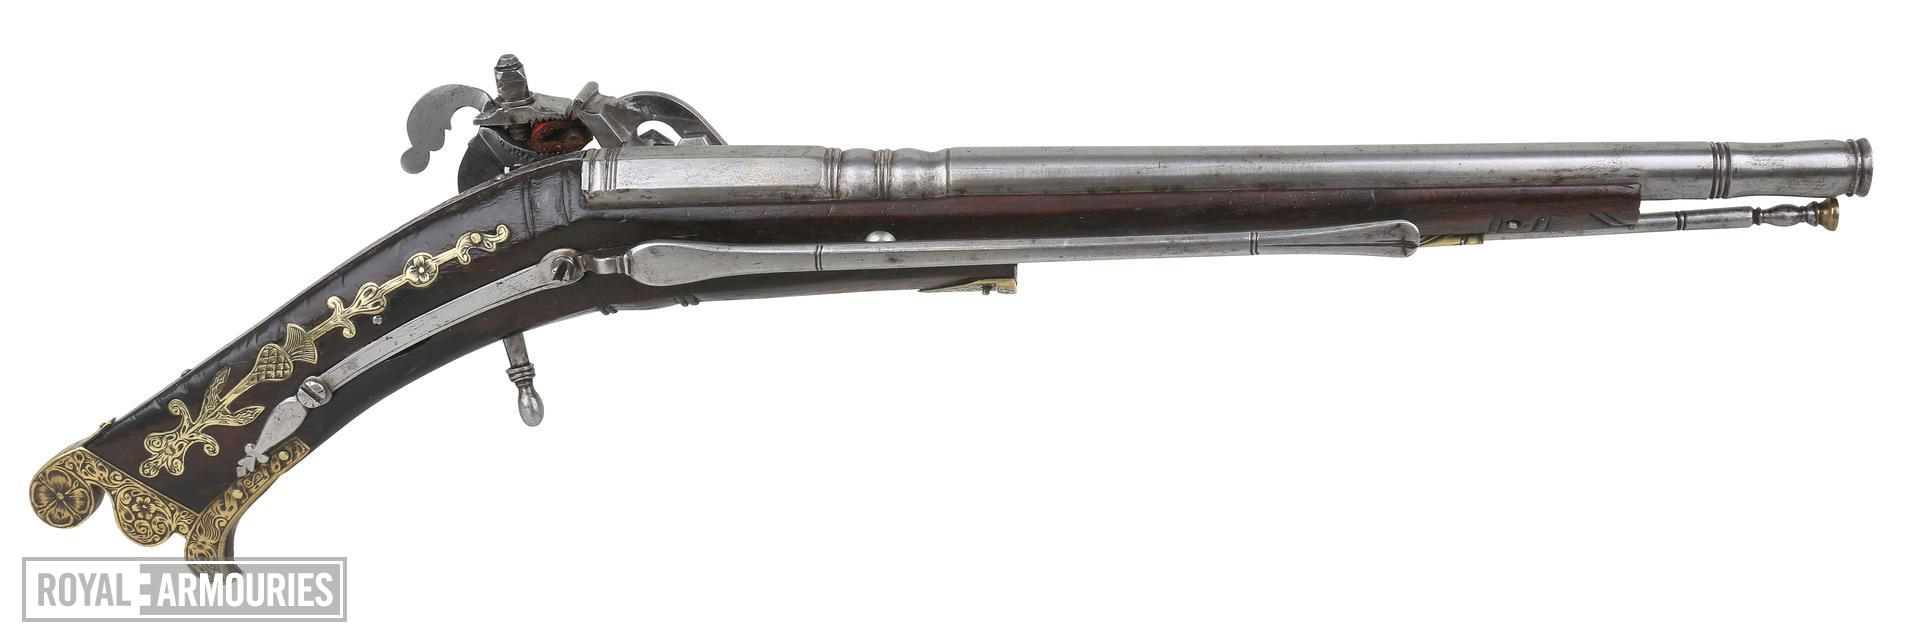 Snaphaunce pistol possibly belonging to Prince Charles, later King Charles I. Scottish, Dundee, dated 1619. Probably made by Allison  May. XII.737